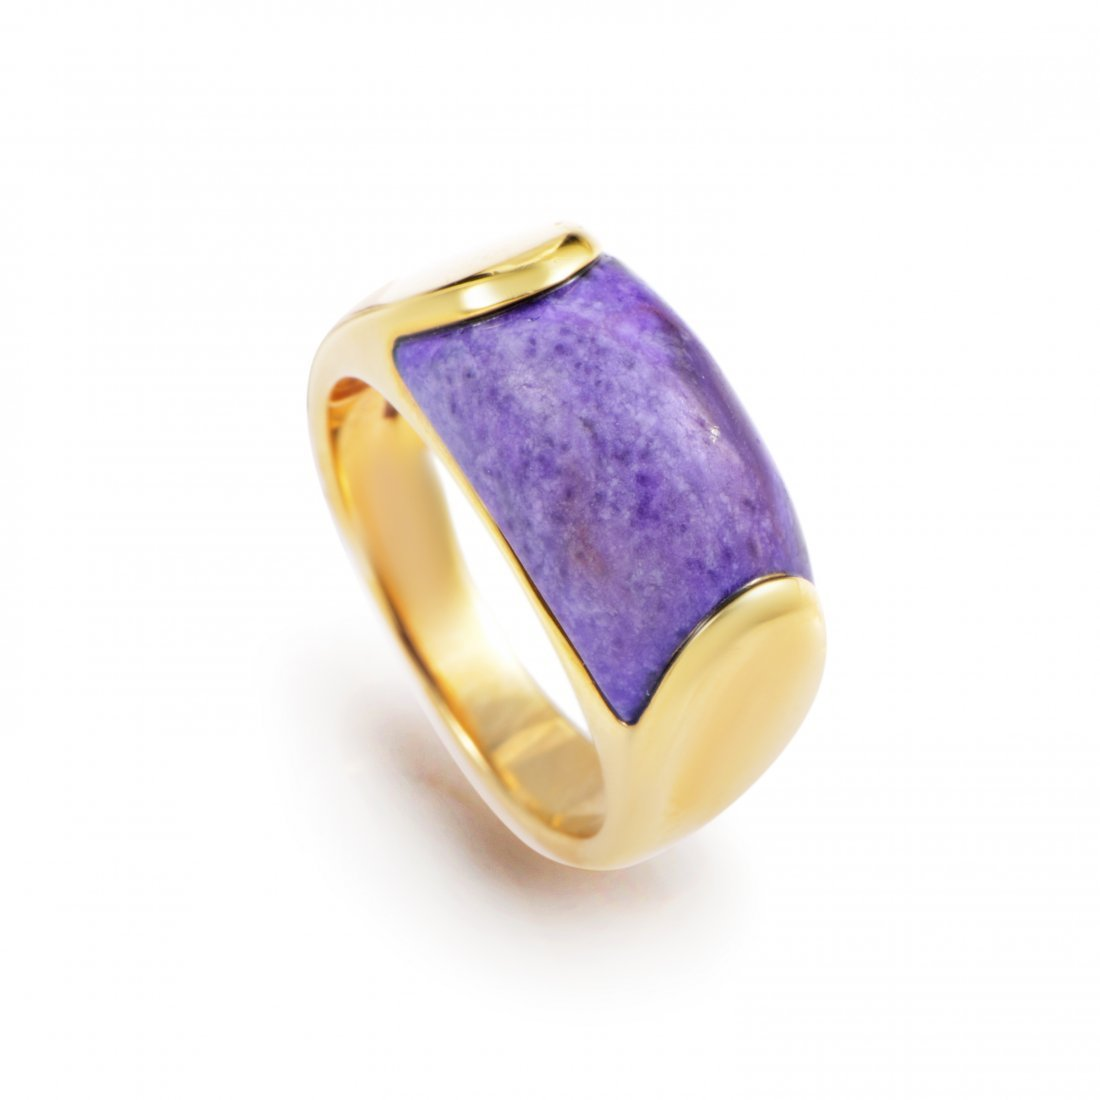 Bvlgari Tronchetto 18K Yellow Gold Purple Agate Ring